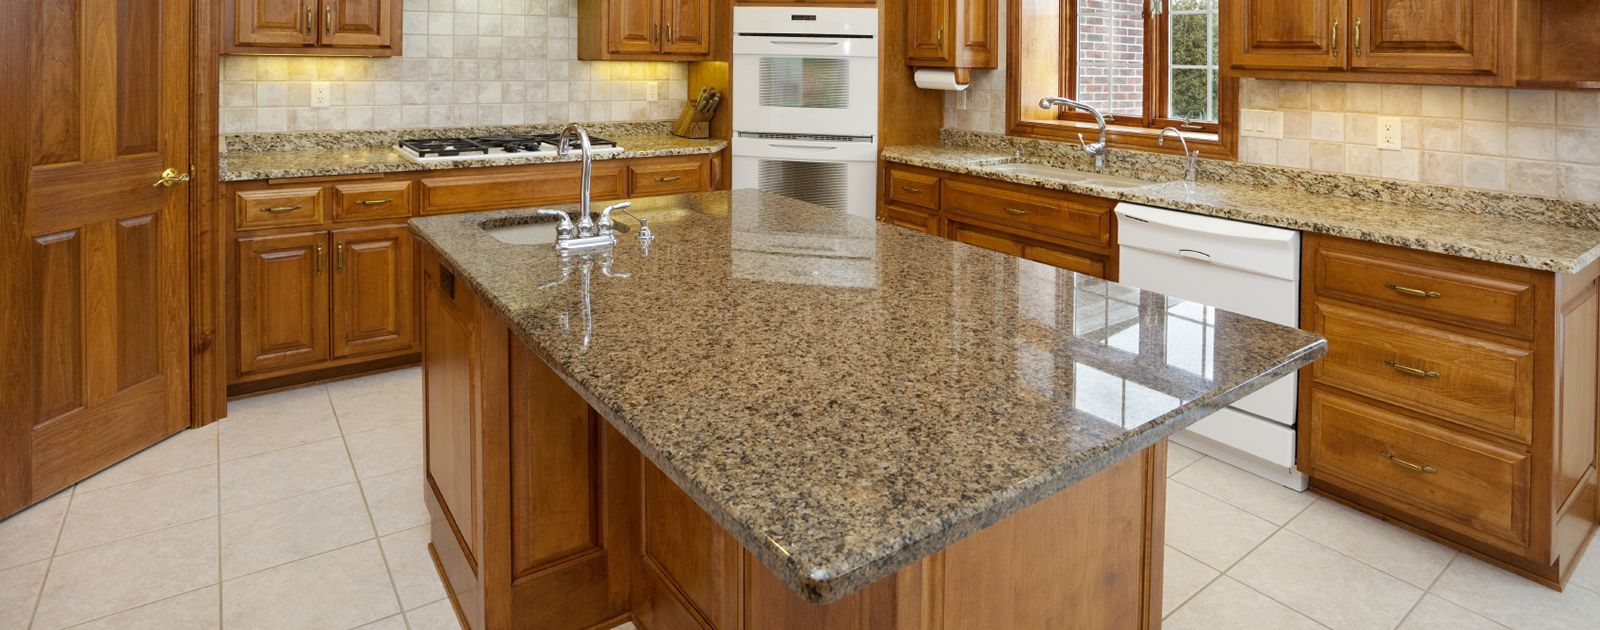 we have expertise in installing granite countertops & marble